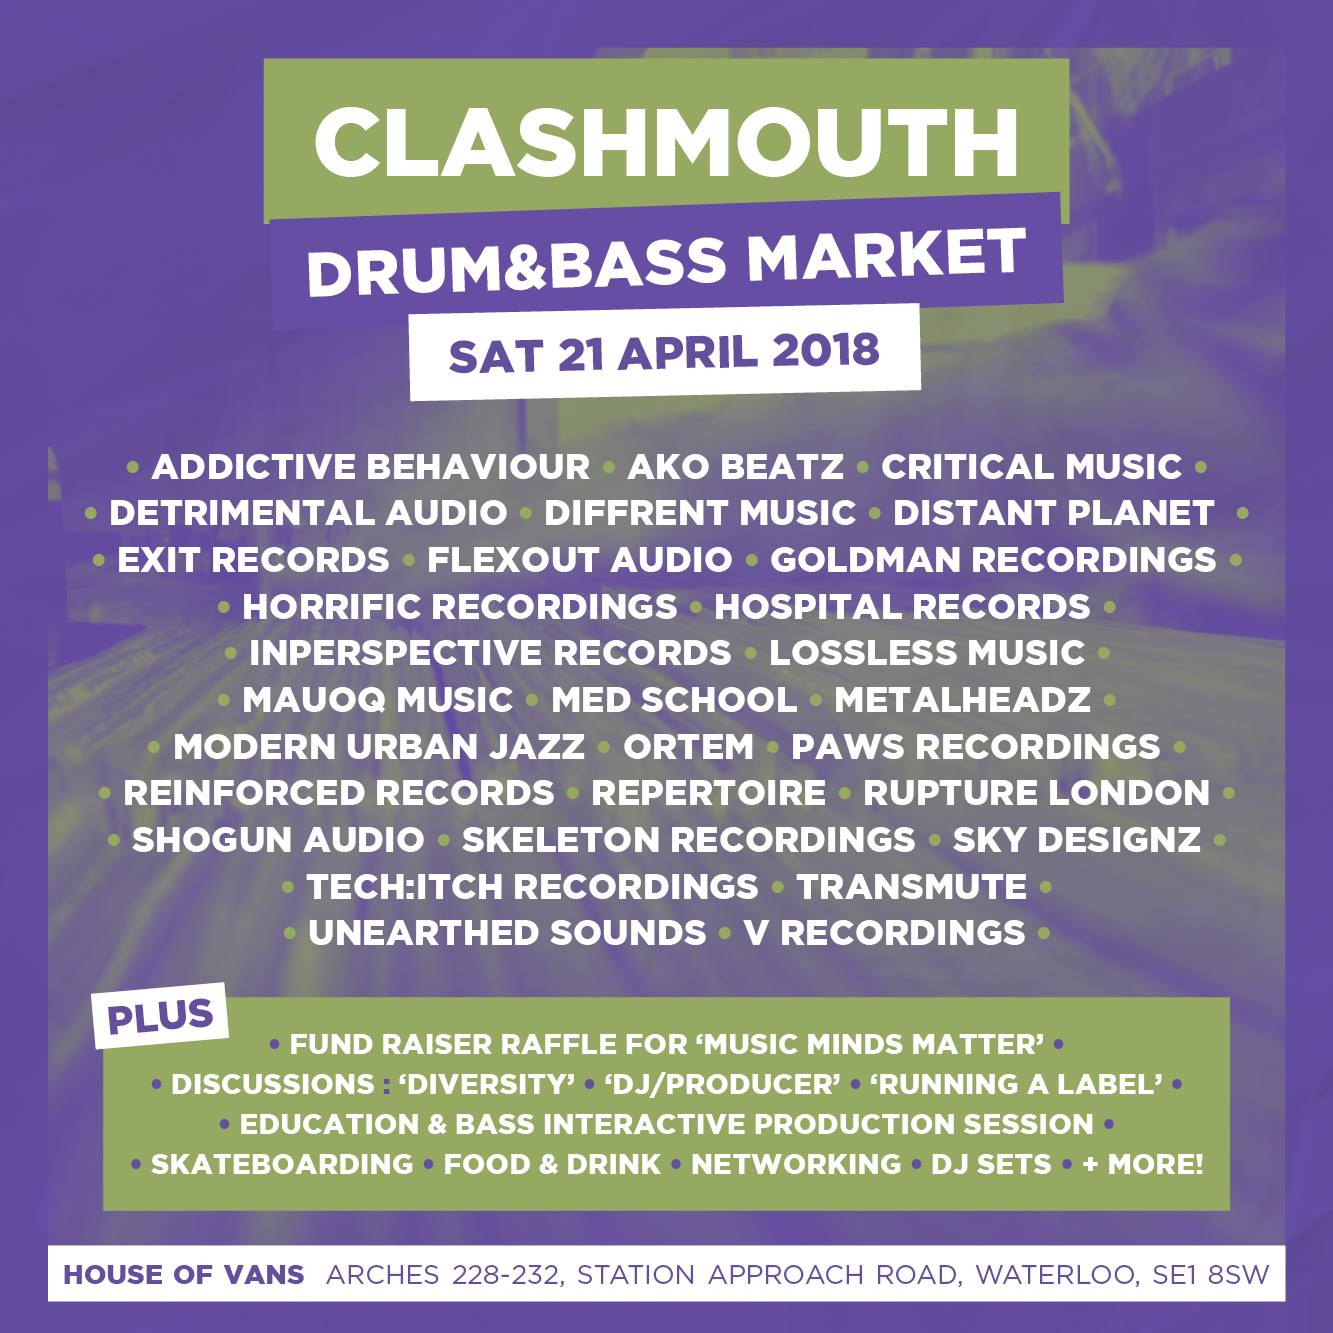 Clashmouth flyer/lineup